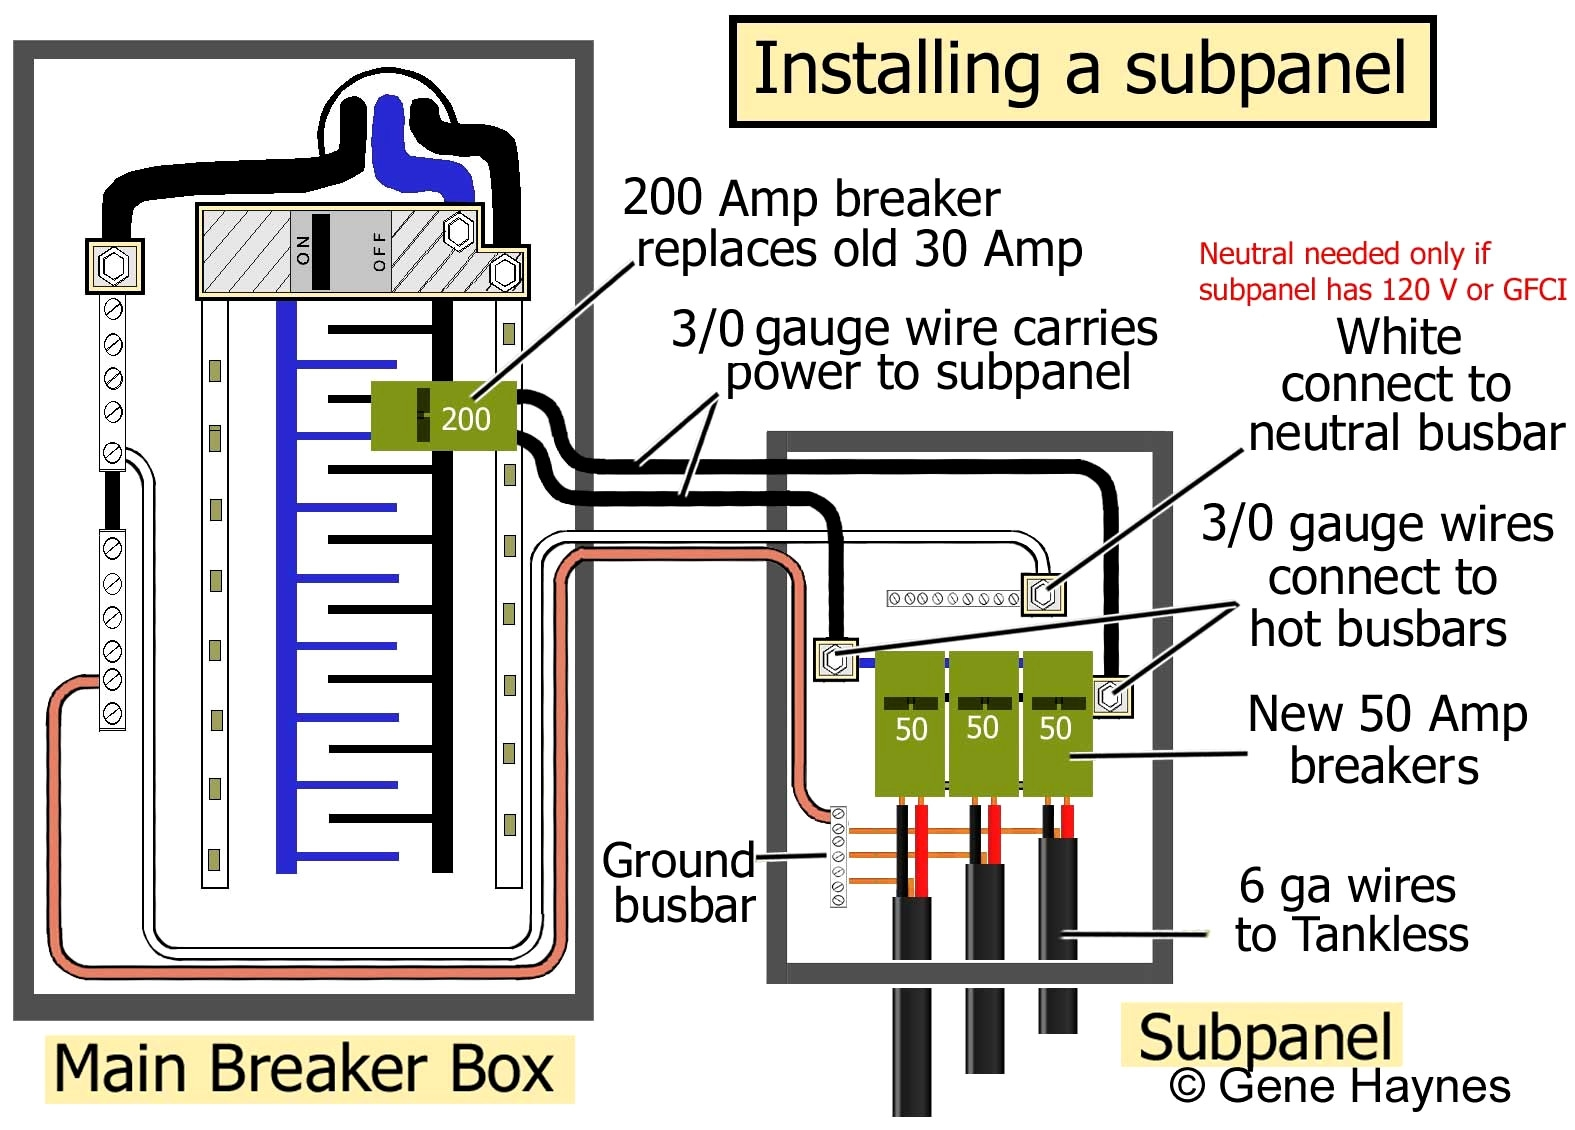 Square D 200 Amp Breaker Box Wiring Diagram from i0.wp.com